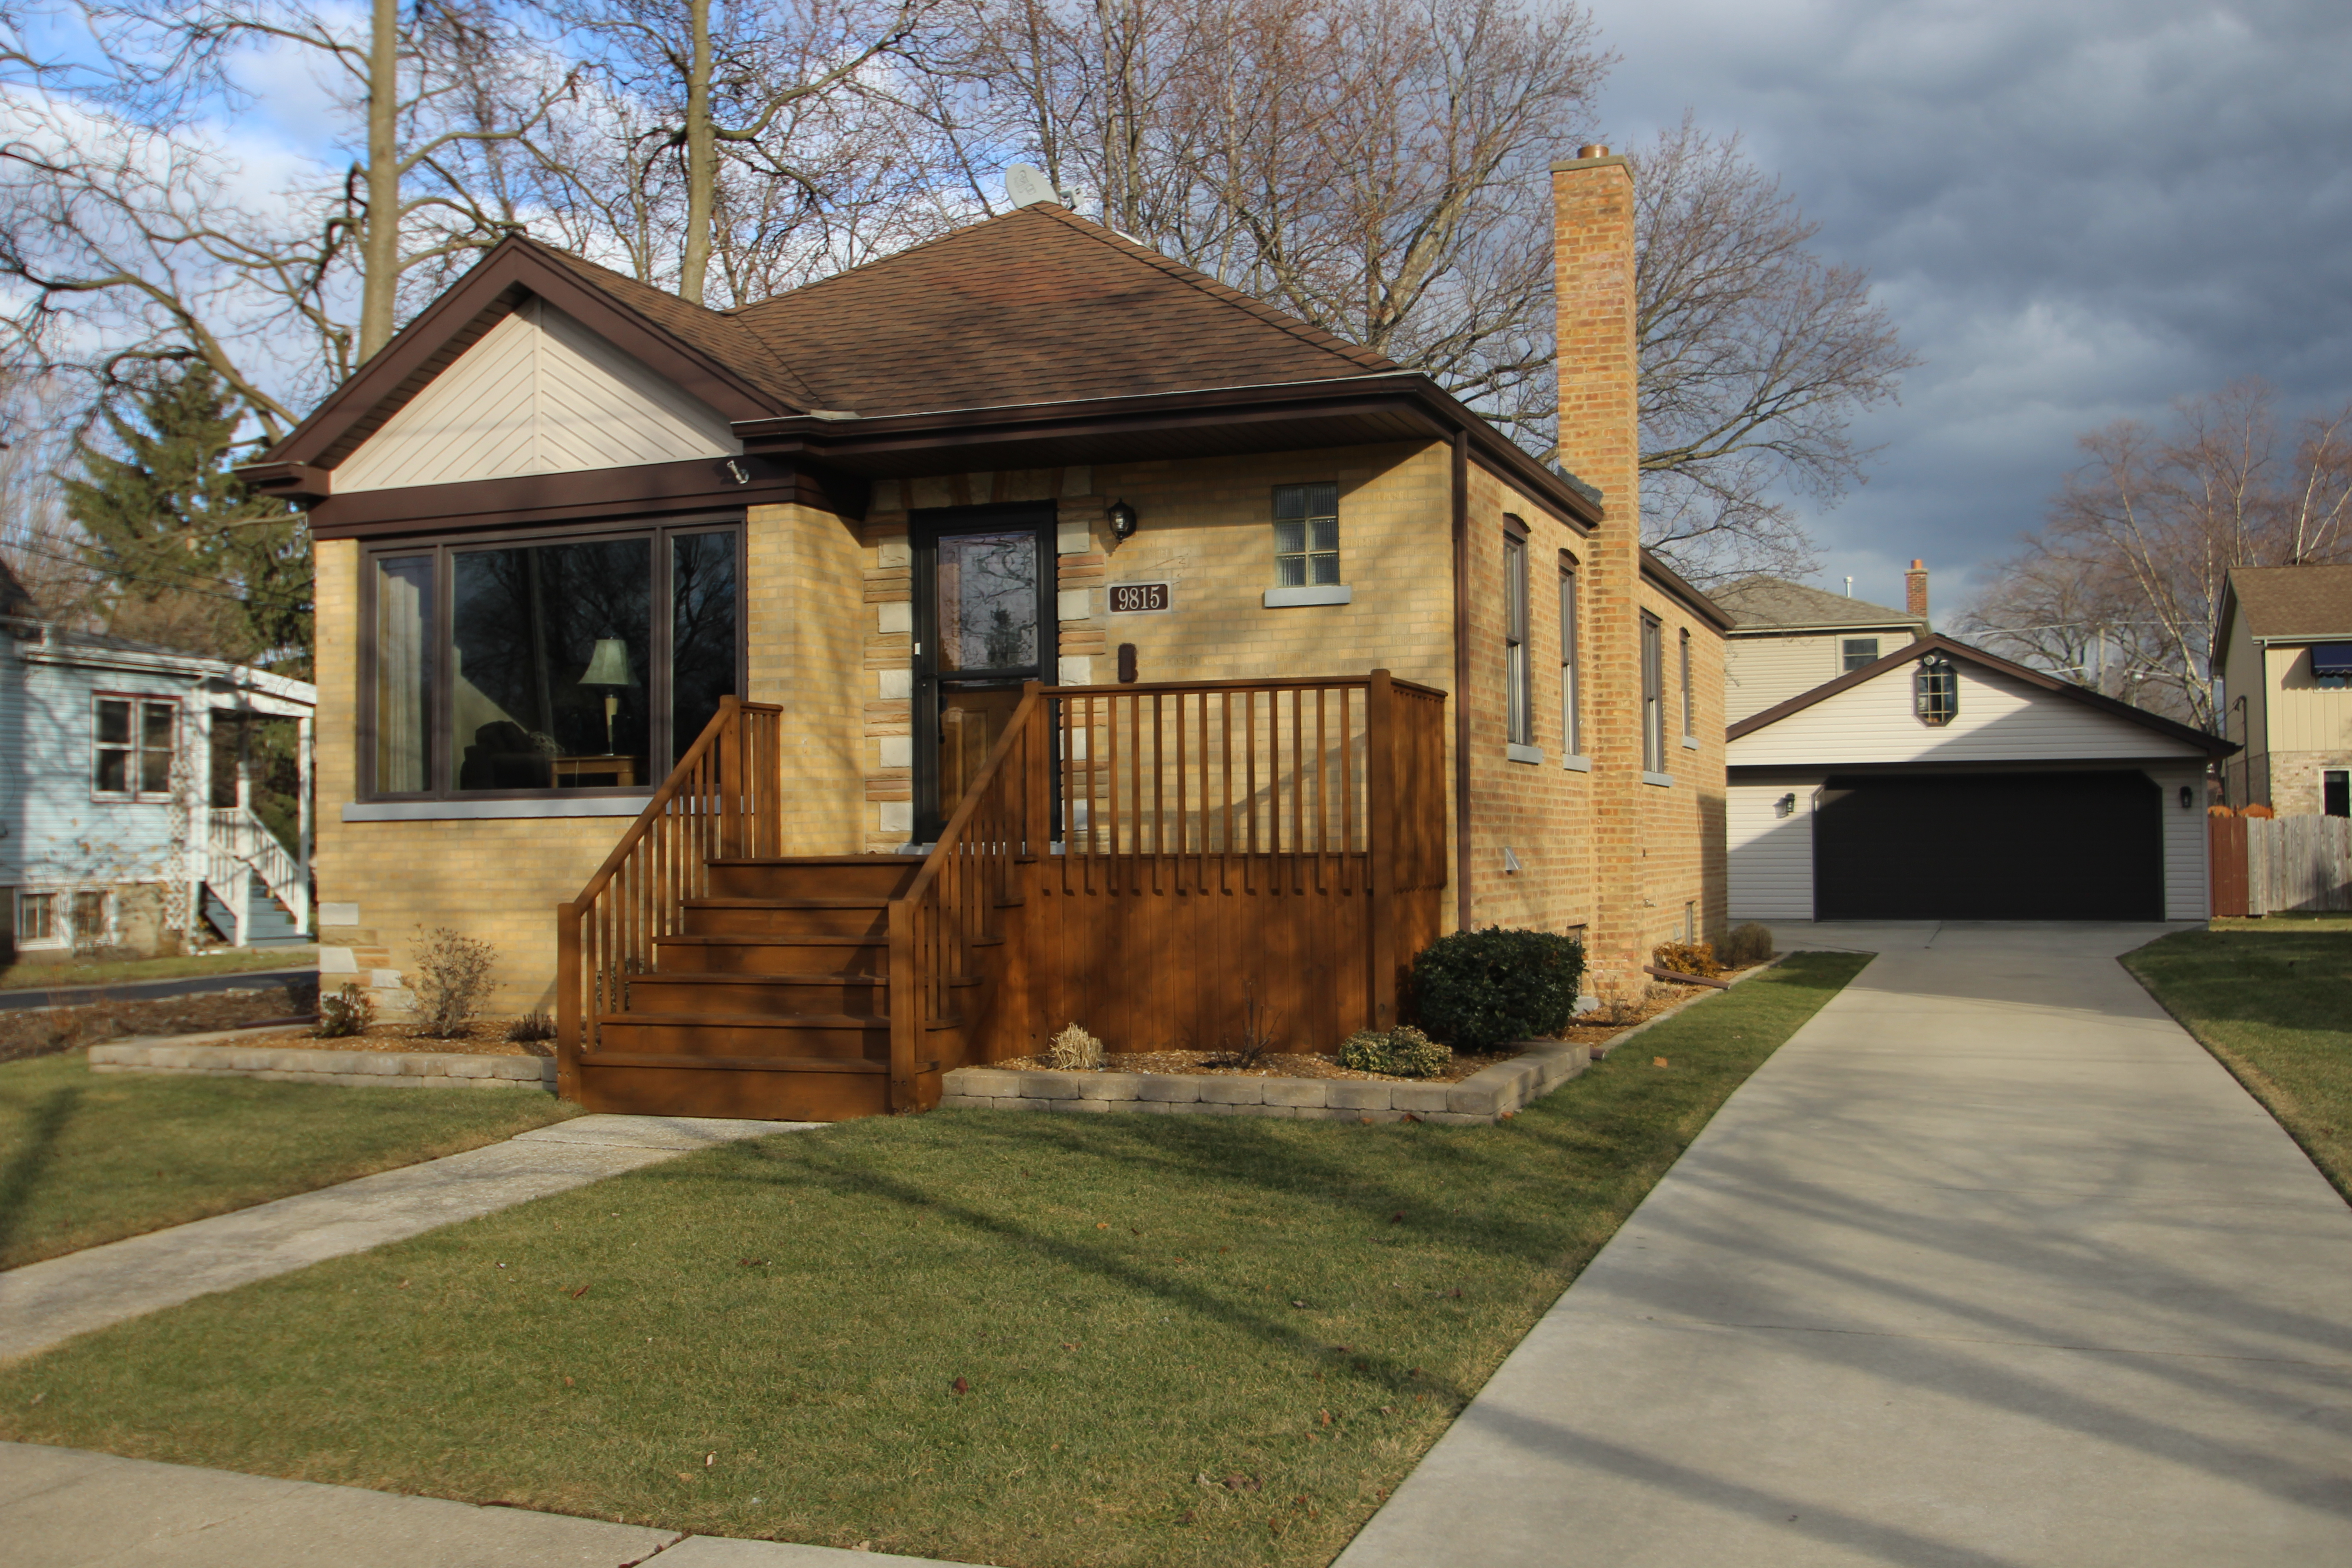 Brick Bungalow in evergreen Park Il